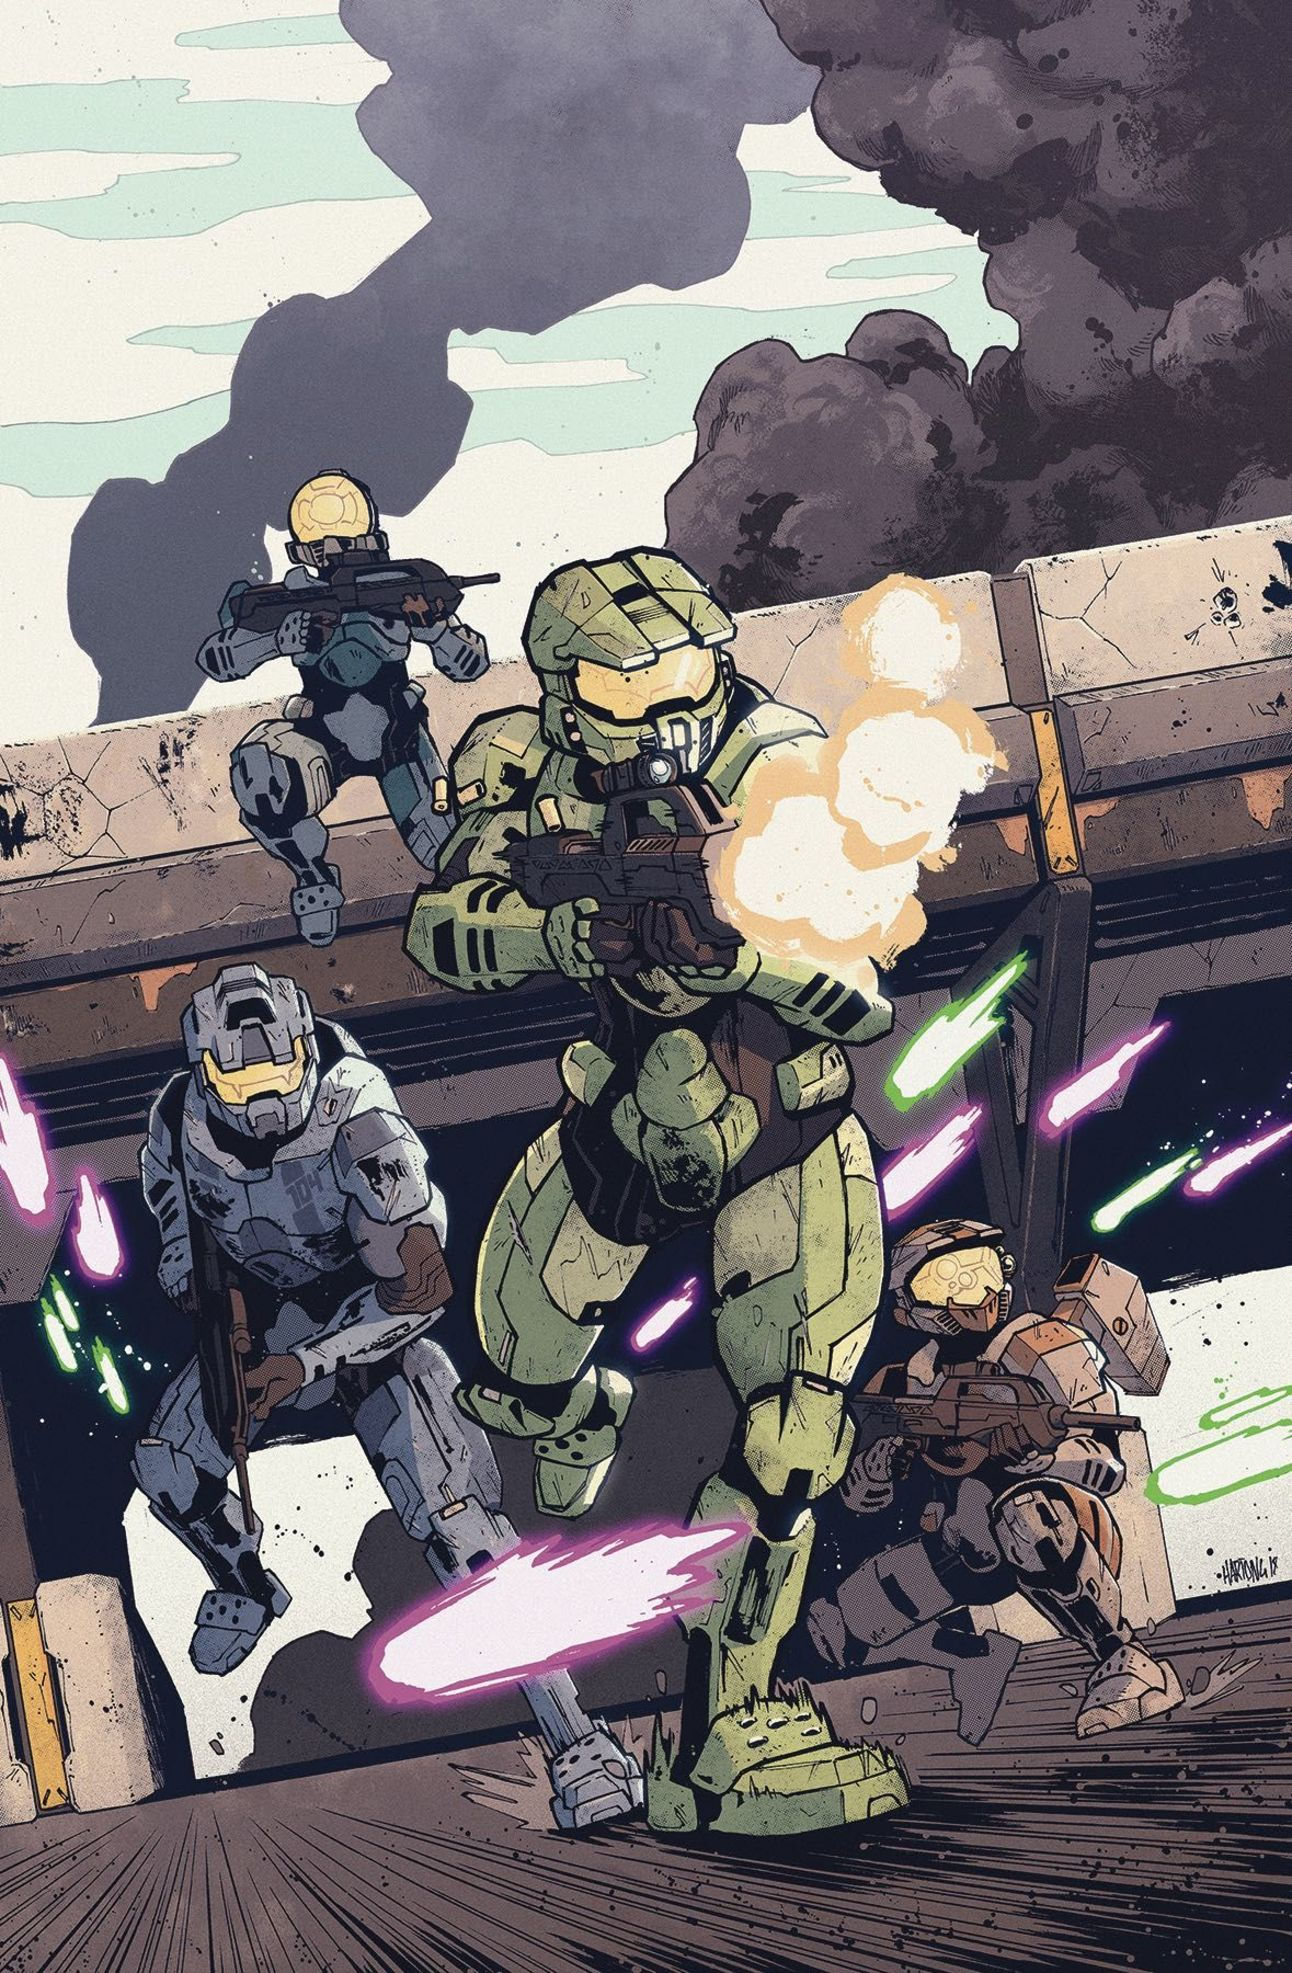 Halo Collateral Damge 1 by Zak Hartong